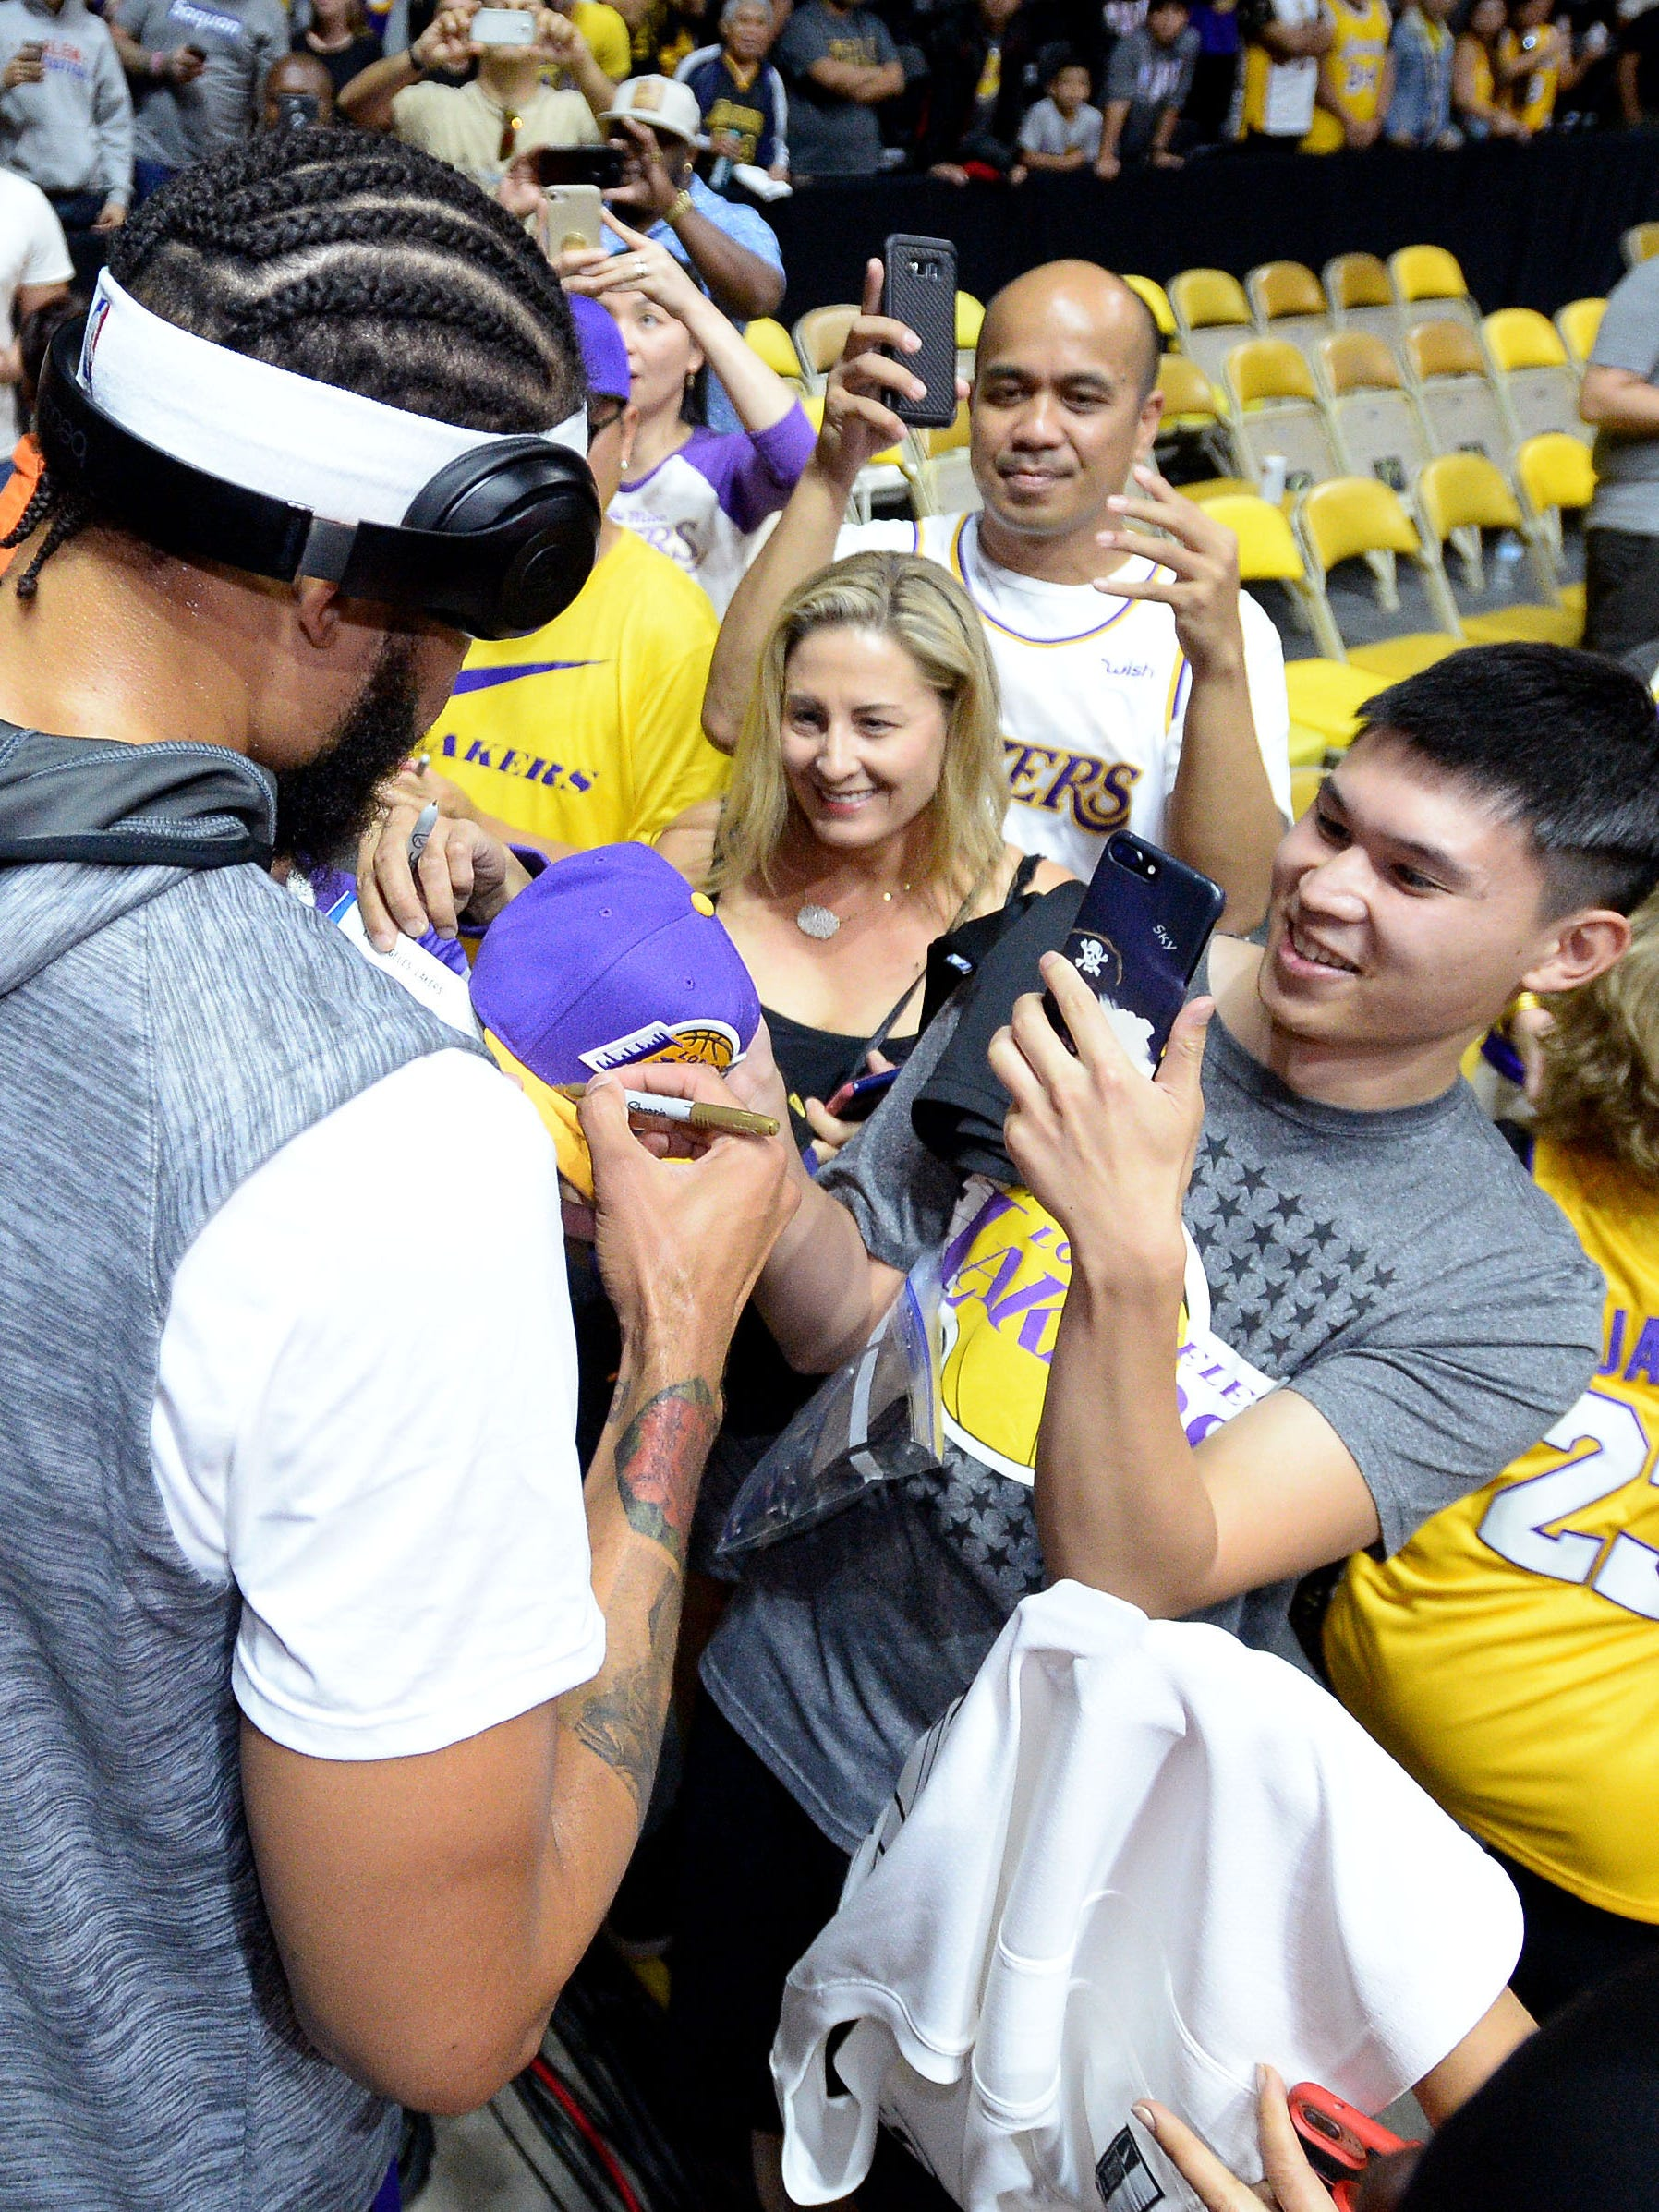 Lakers center JaVale McGee signs autographs for fans before the preseason game against the Nuggets last month.